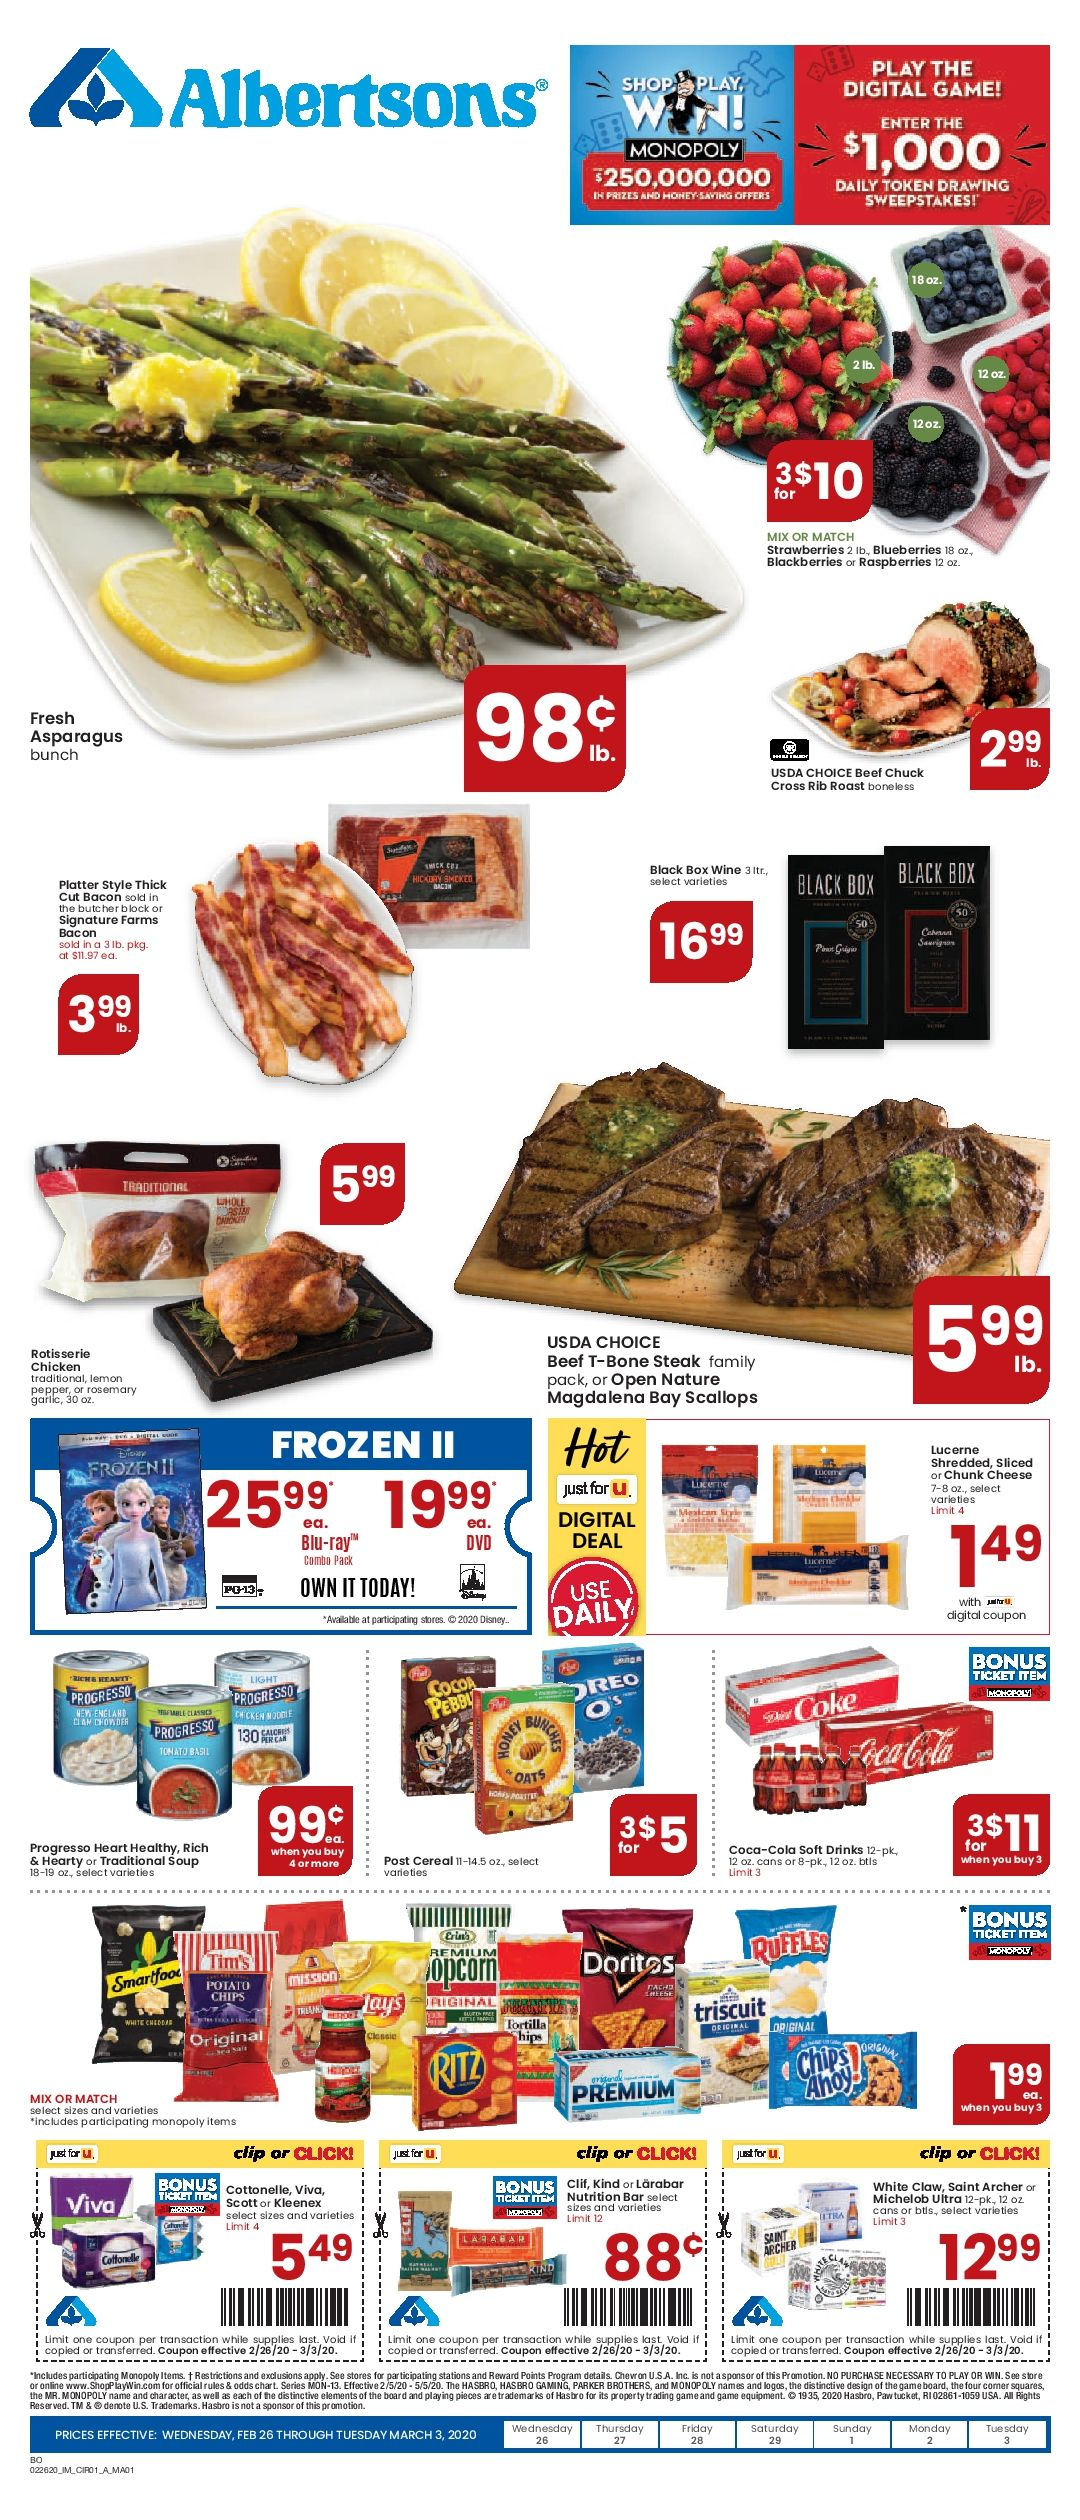 Albertsons Weekly ad Flyer 03/11/20 03/17/20 in 2020